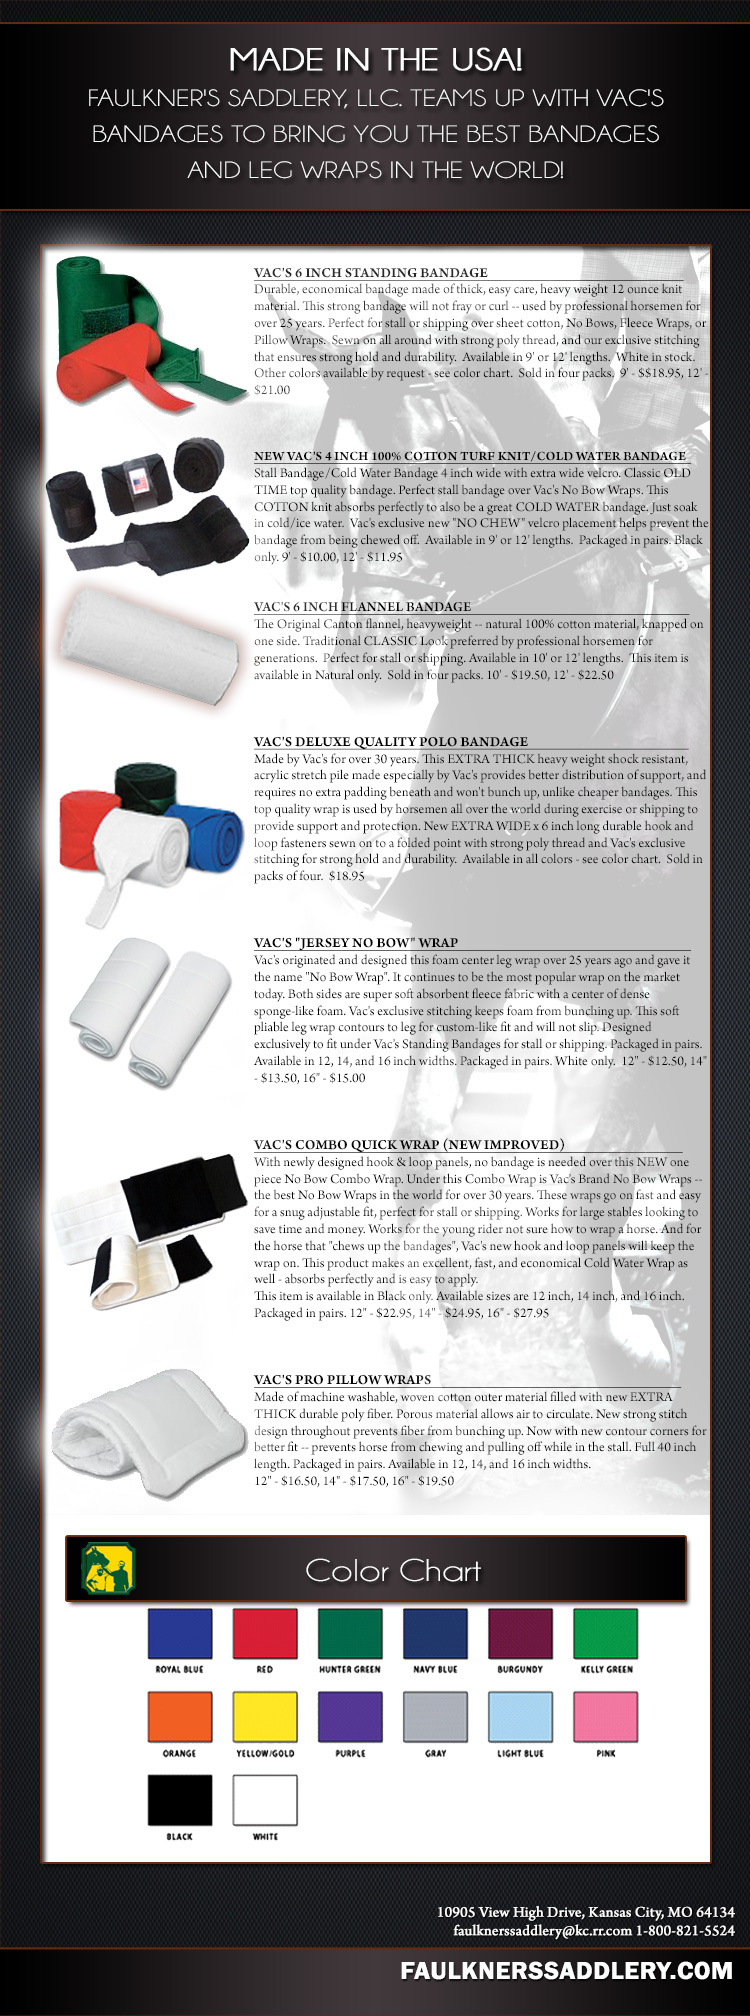 VAC's Leg Wraps & Bandages - Made in USA - The best bandages in the world!